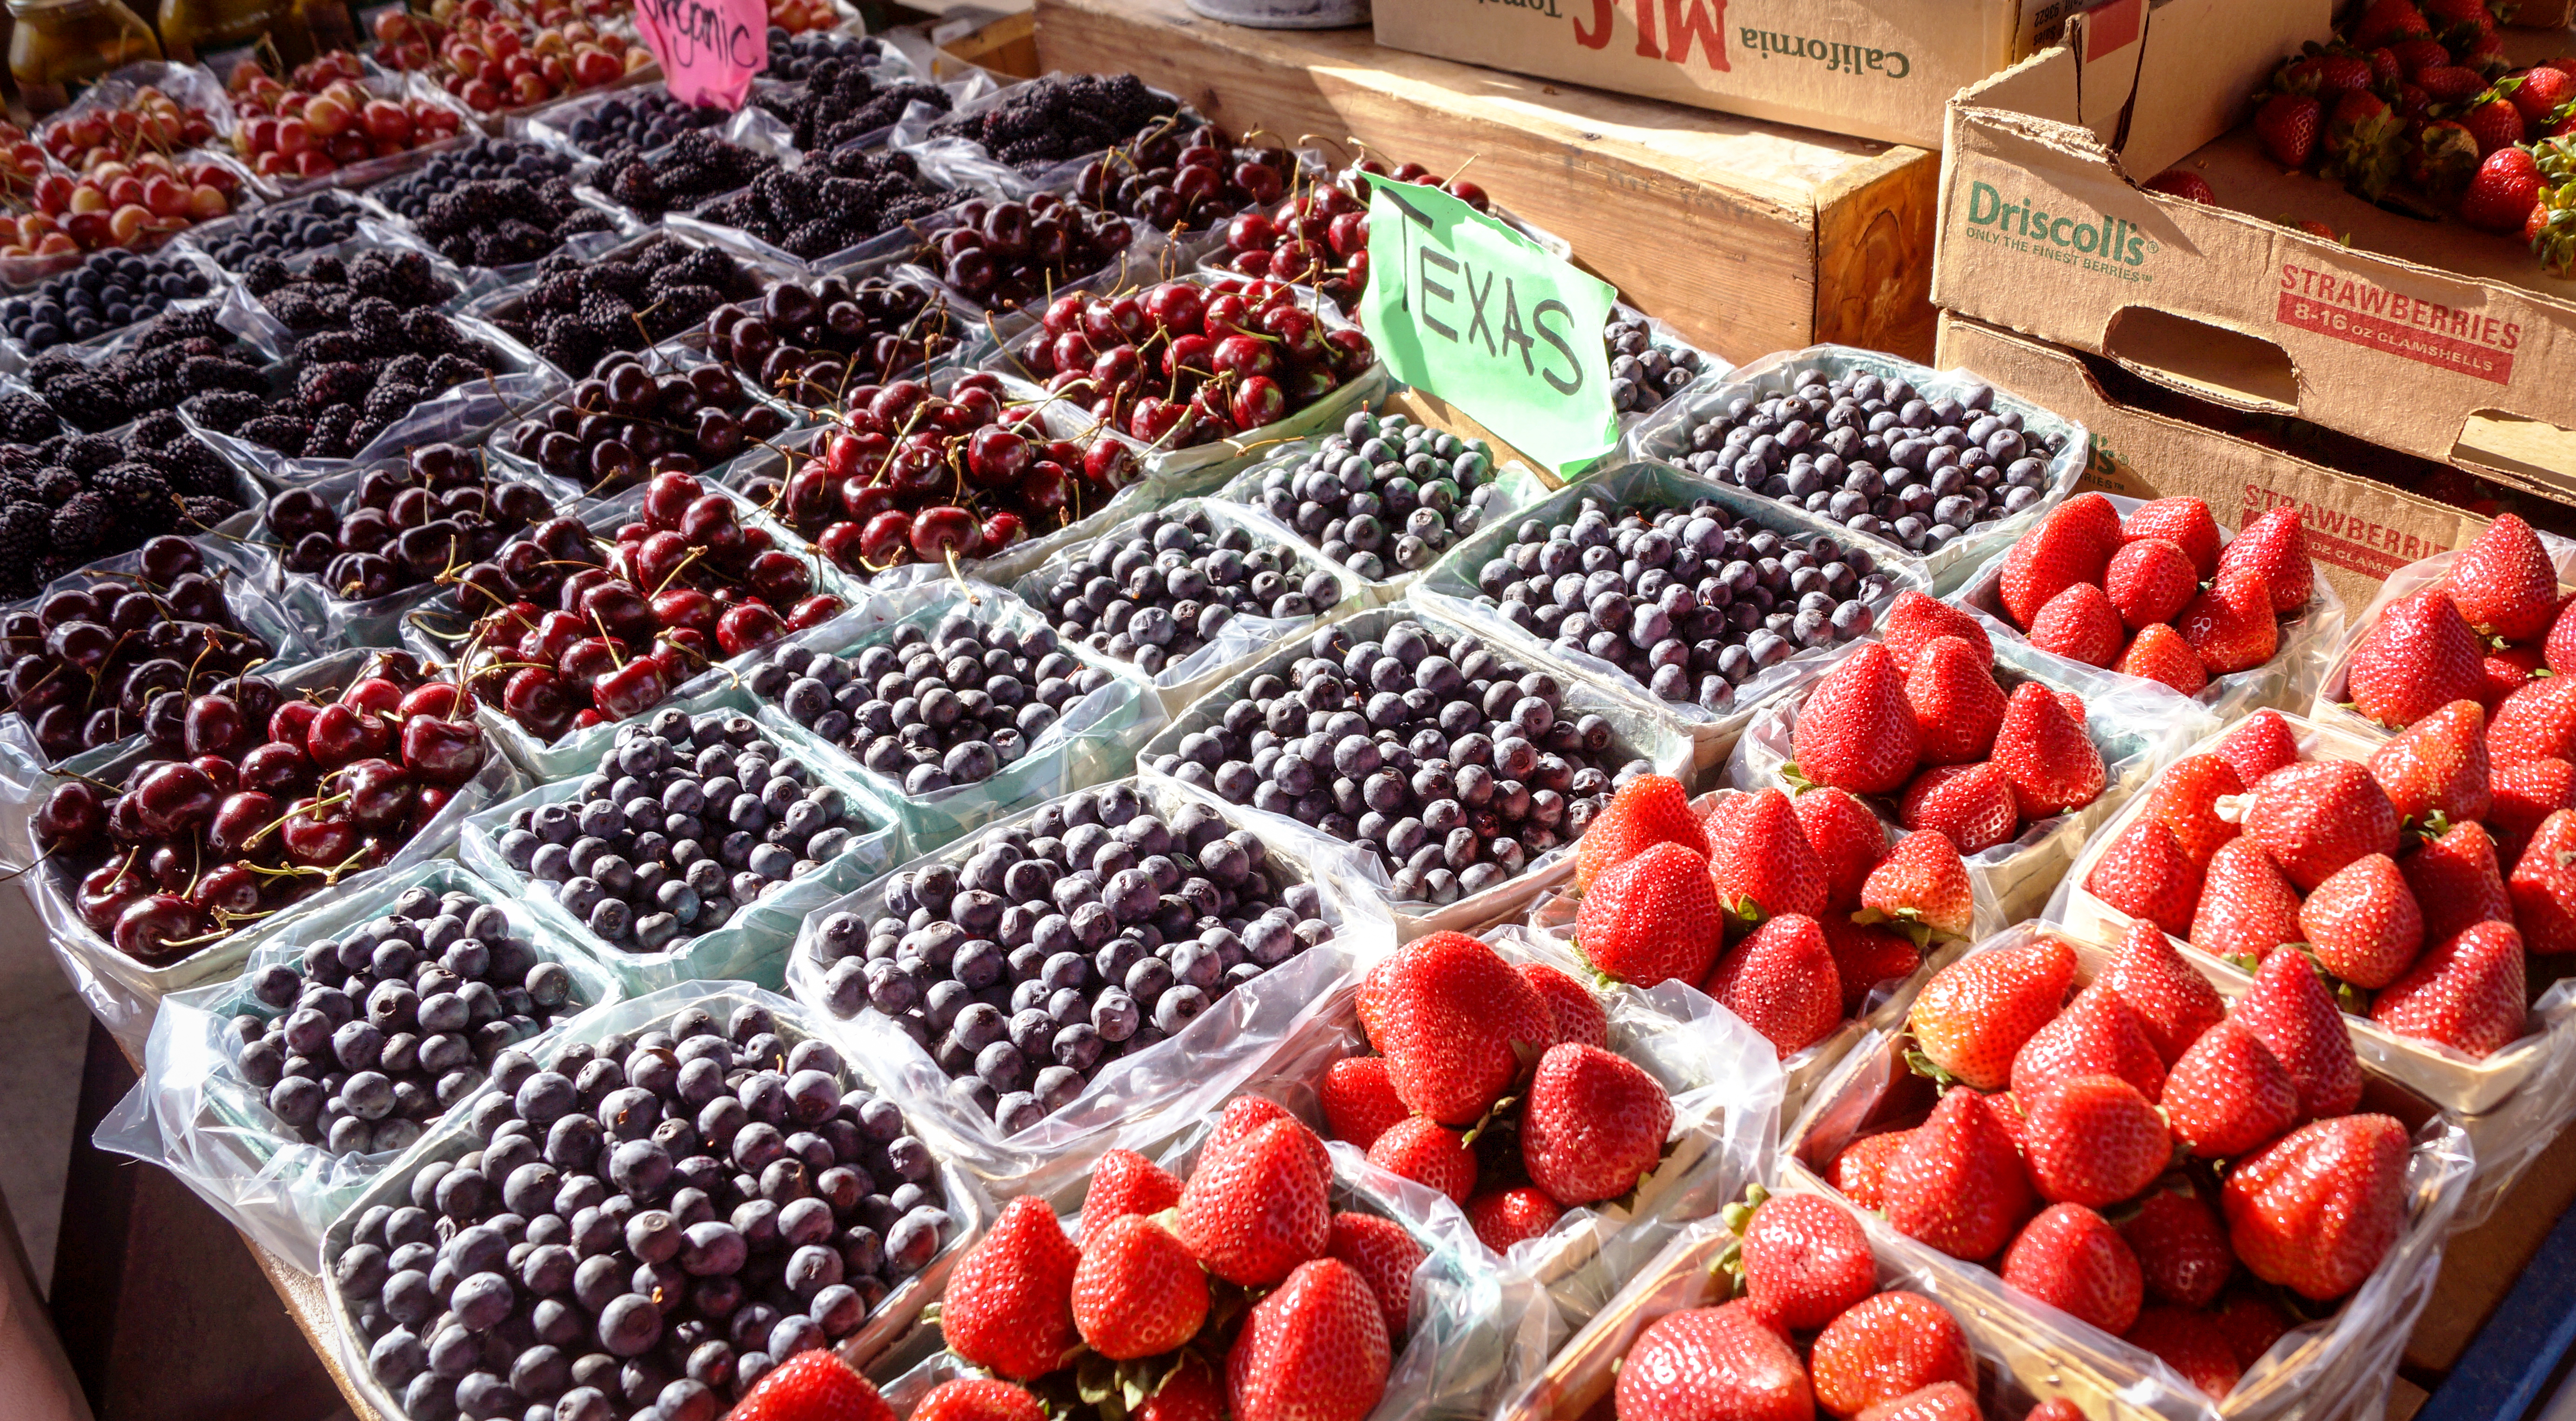 Get Your Fill of Fresh Fruits at Grapevine Farmers Market